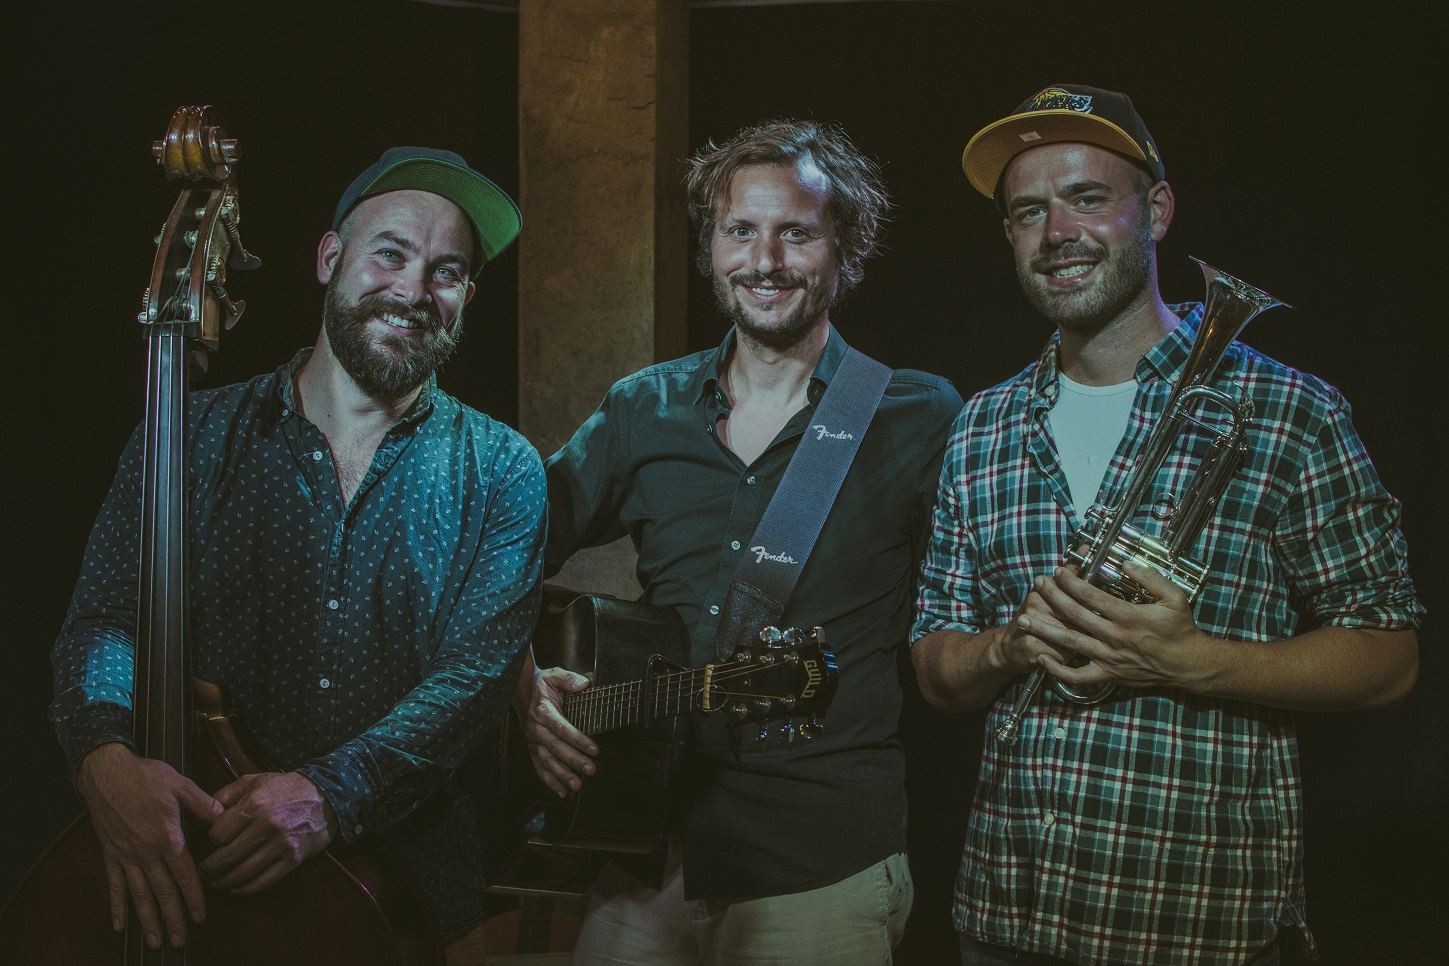 MULTINATIONAL INDIE-FOLK BAND BRINGS GLOBE-TREKKING SOUND TO NYC, PHILLY